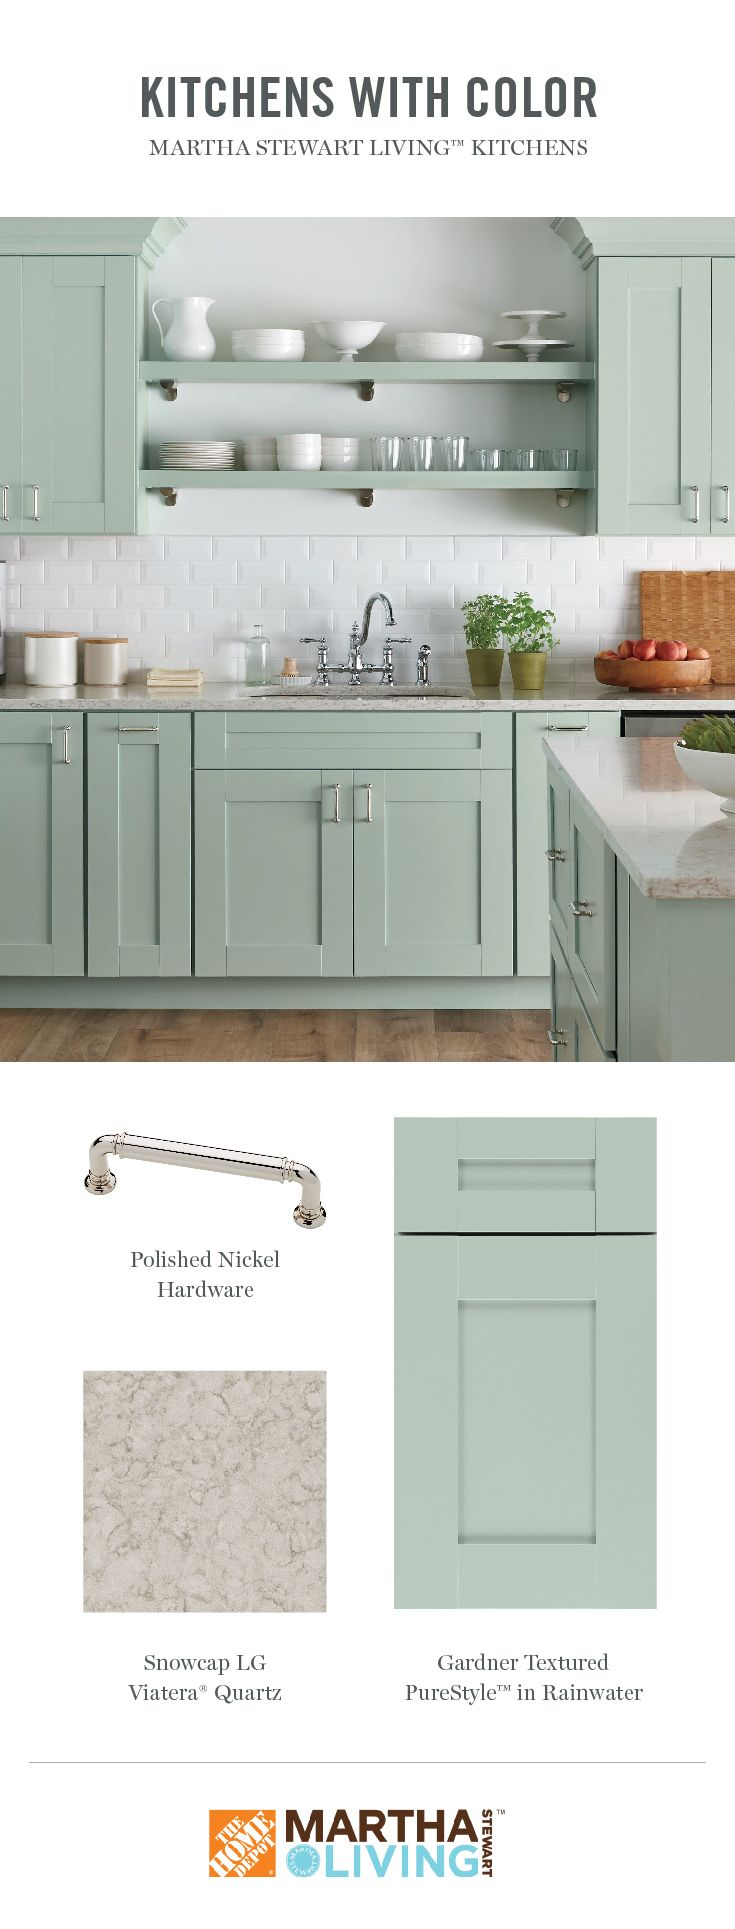 For A Change From Wood Tones Martha Stewart Living Purestyle Color Options Are Shown Off To Great Kitchen Renovation New Kitchen Cabinets Kitchen Design Color